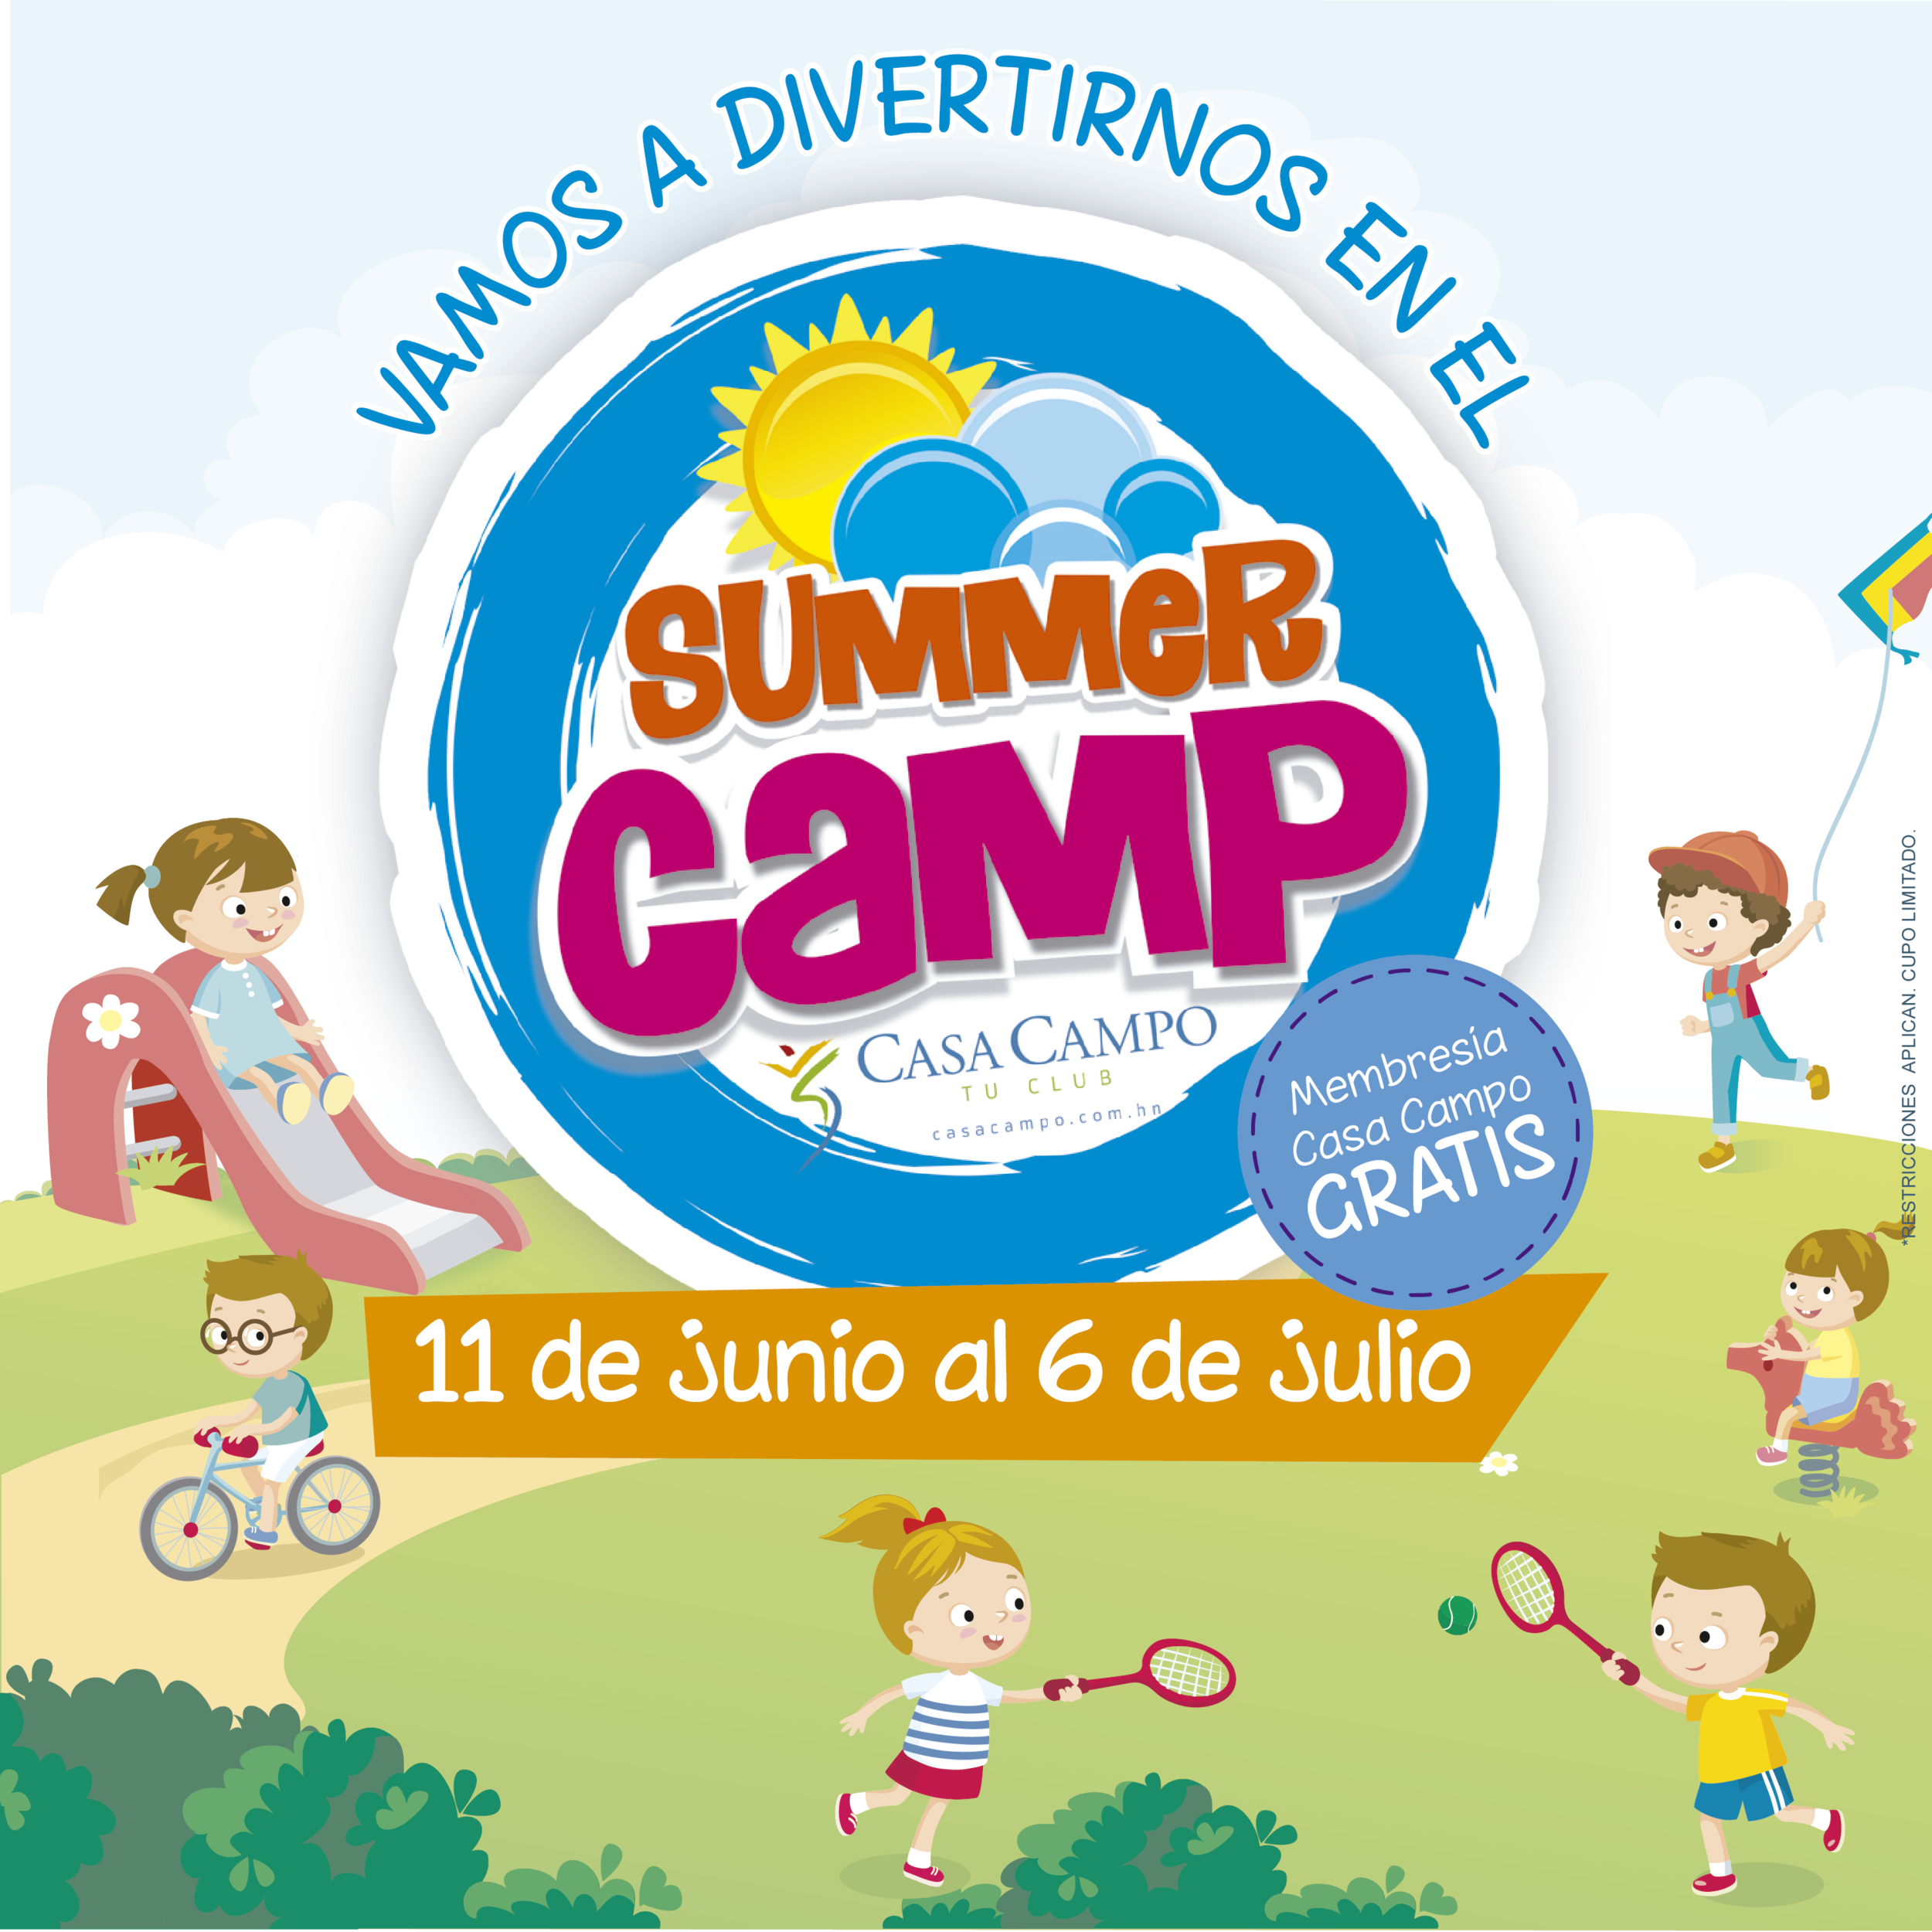 summer_camp_2018_whats_app-02.png